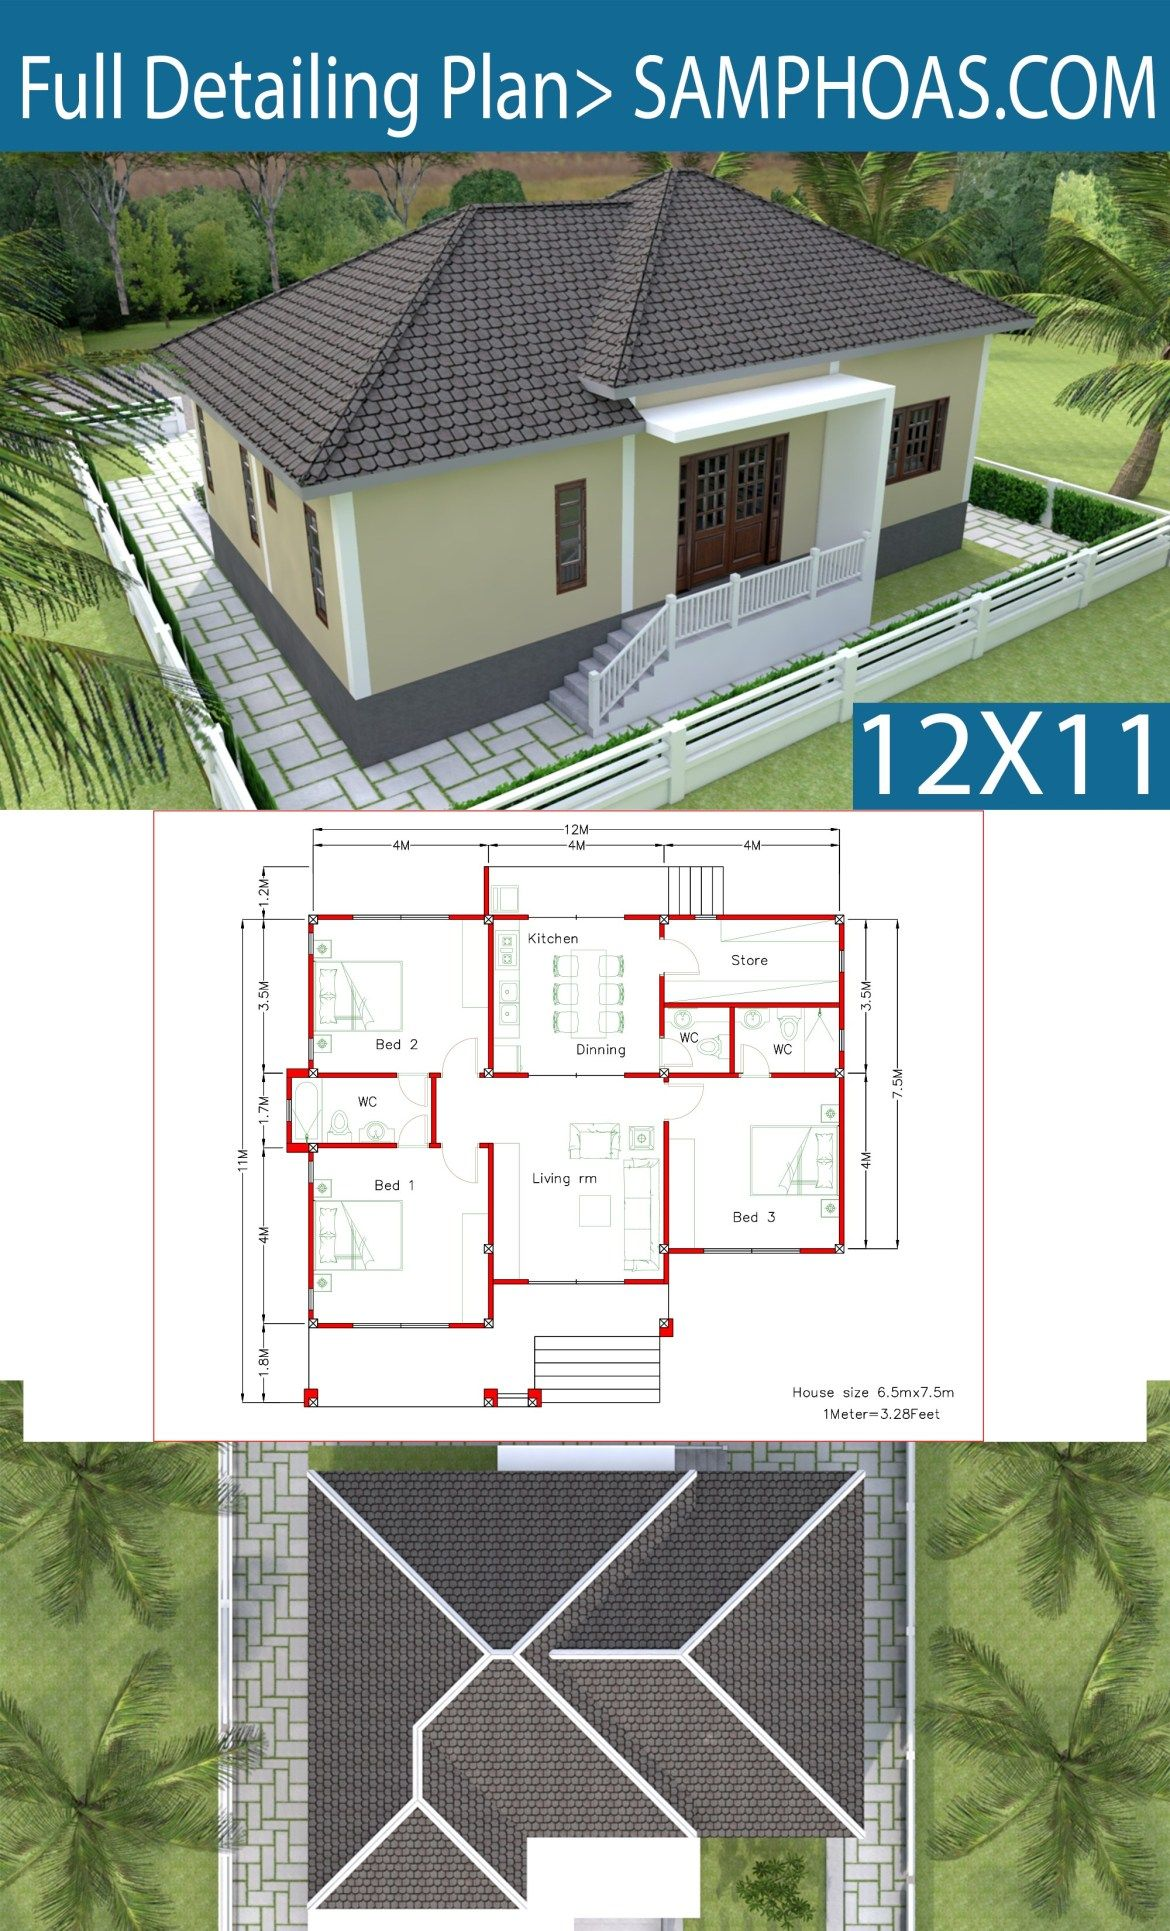 Interior Design Plan 12x11m With Full Plan 3beds Samphoas Plansearch Interior Design Plan Modern Bungalow House Design Simple House Design